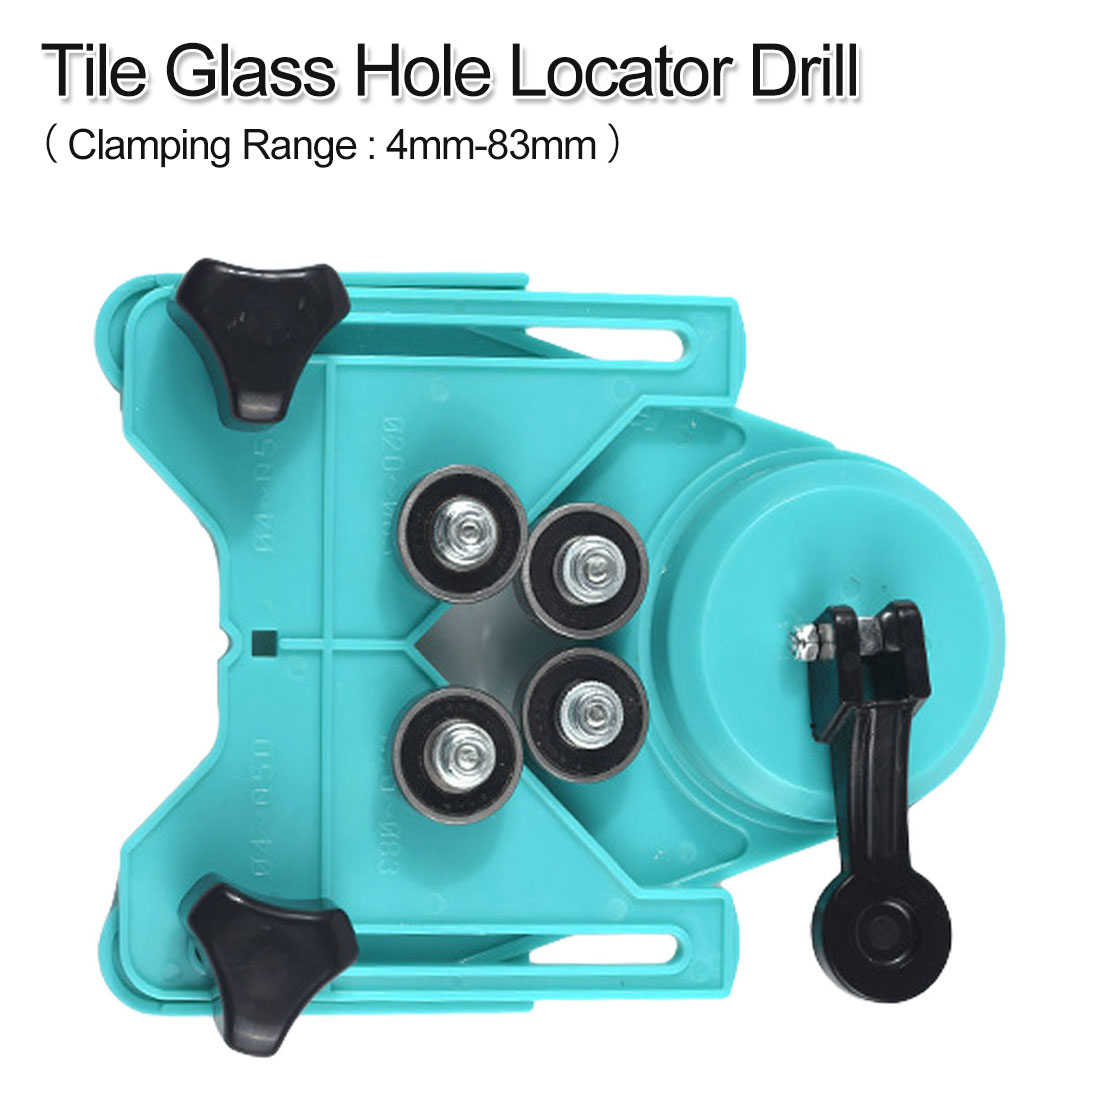 4-83mm Holding Range Diamond Opening Drill Bit Tile Glass Hole Locator Saw Core Bit Guide Chuck Positioner Industrial Puncher